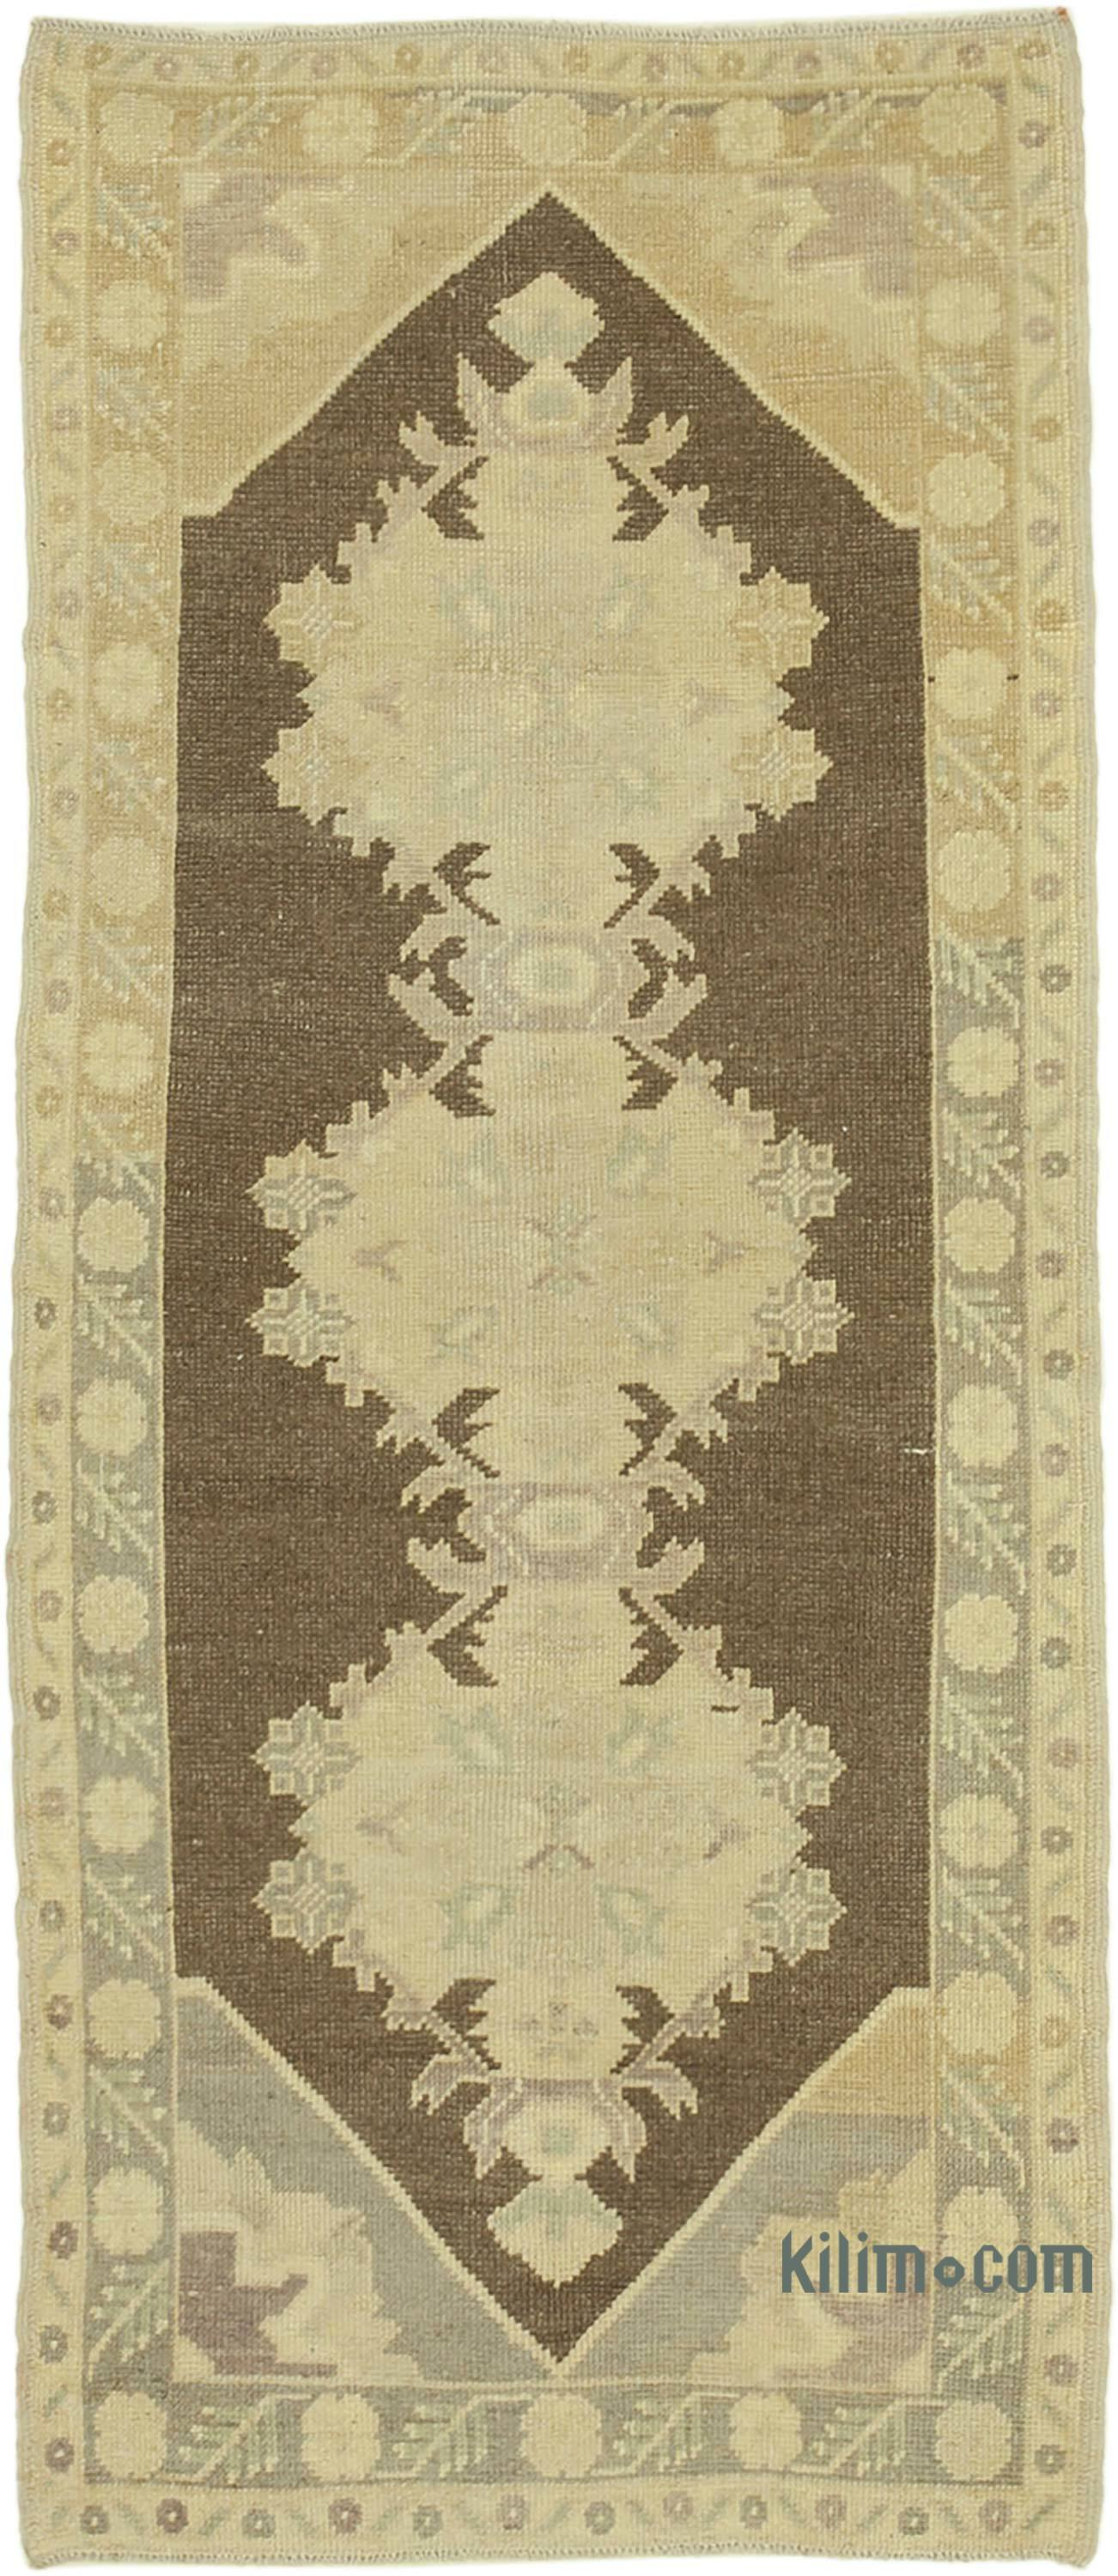 Wool Hand Knotted Vintage Area Rug